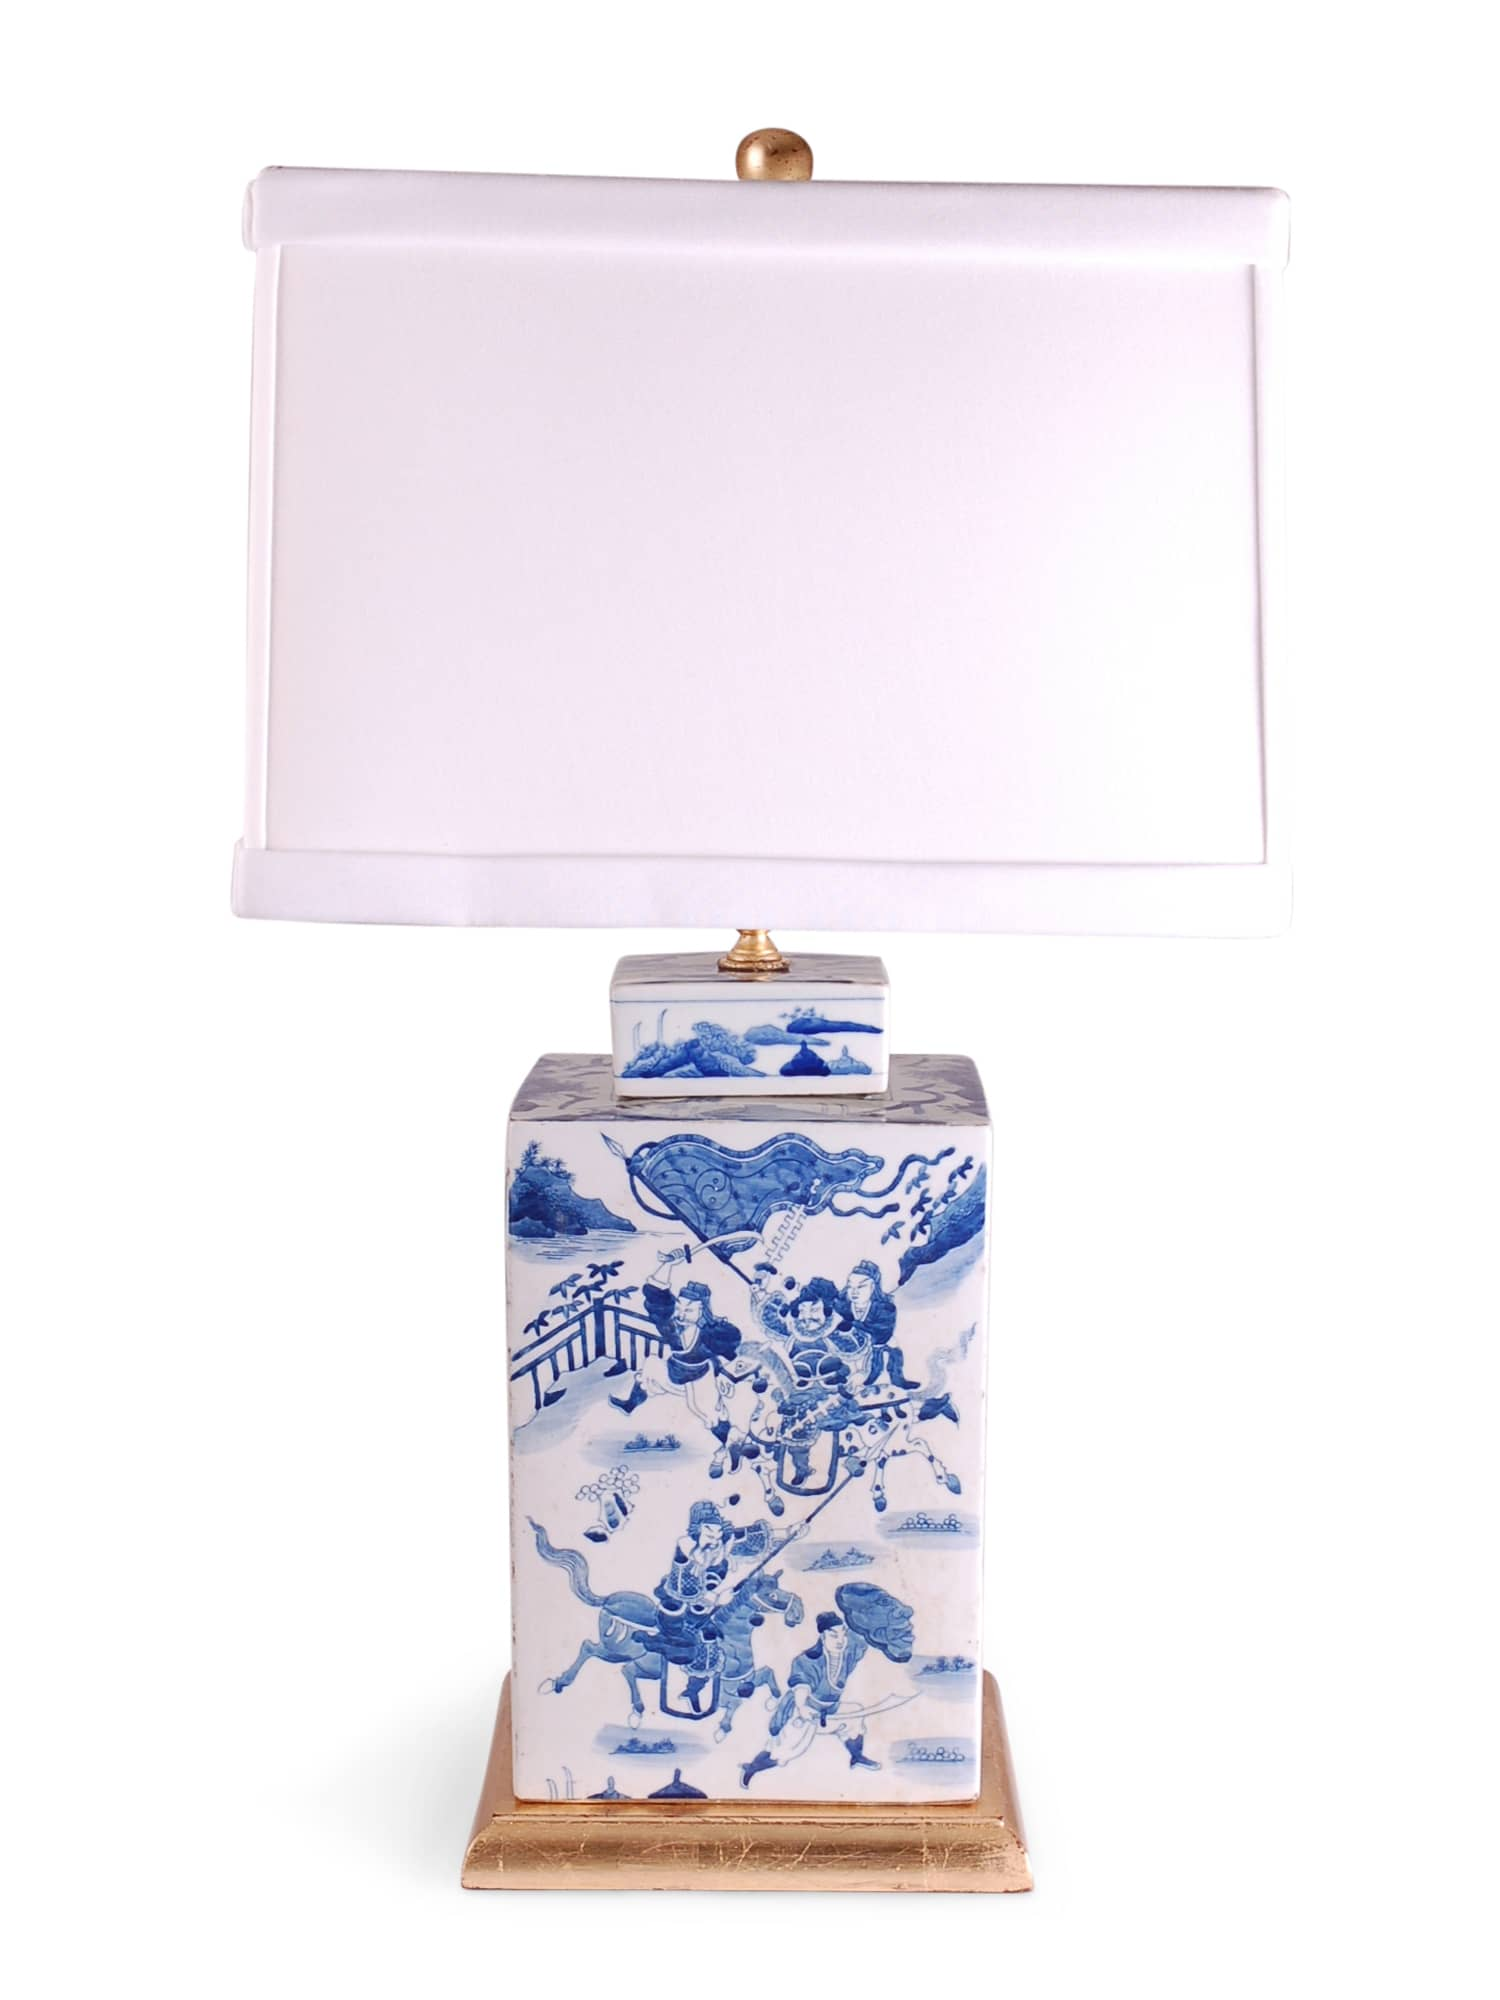 Square Blue And White Warrior Tea Cad Lamp